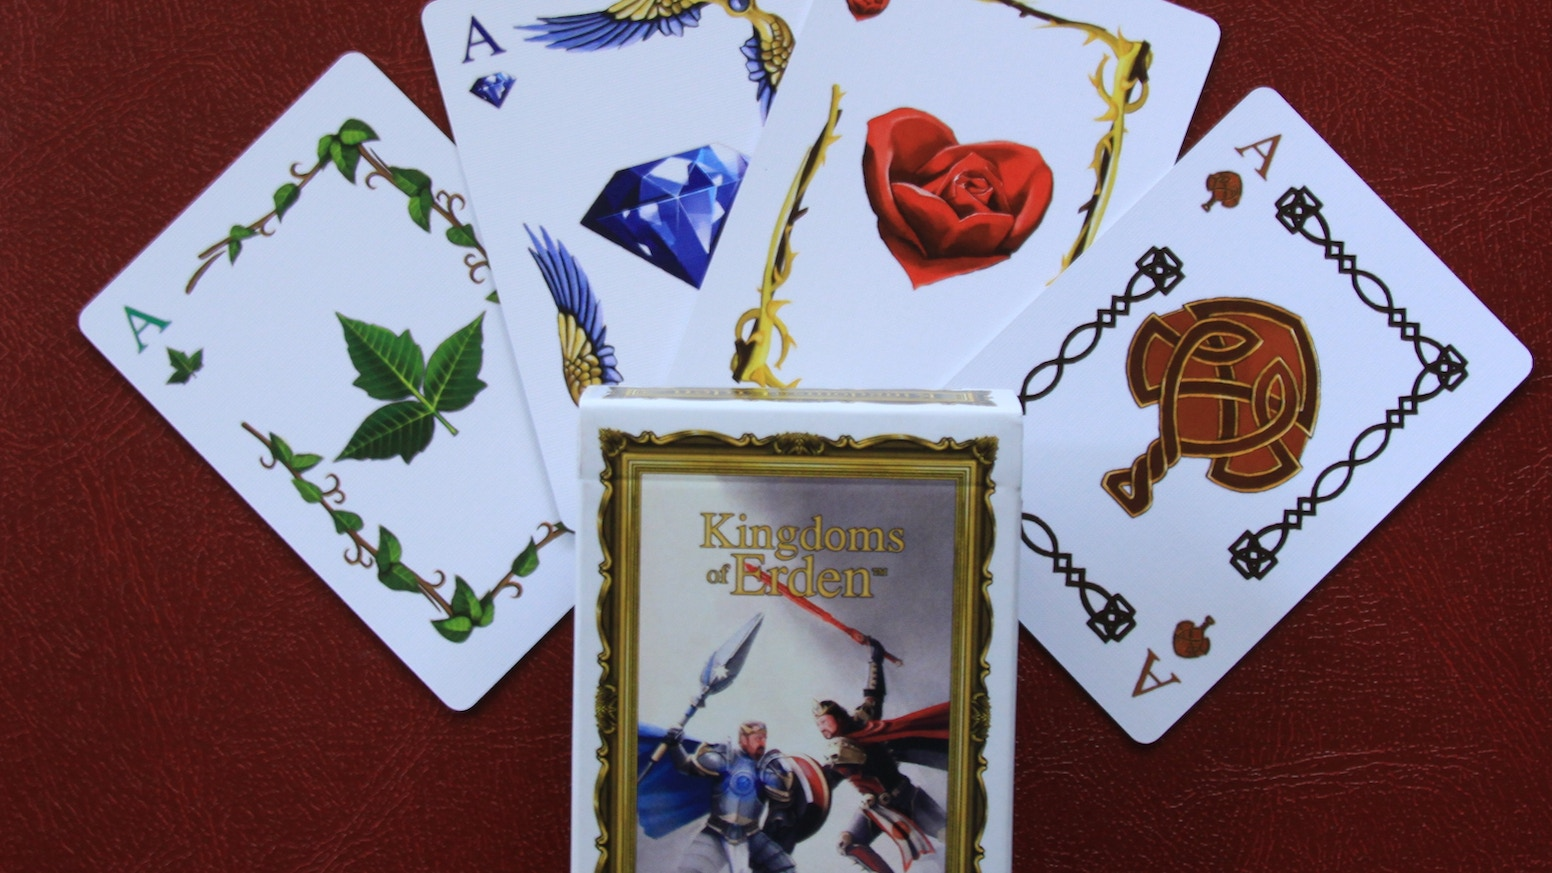 Kingdoms Of Erden Collectable Fantasy Playing Cards And Art